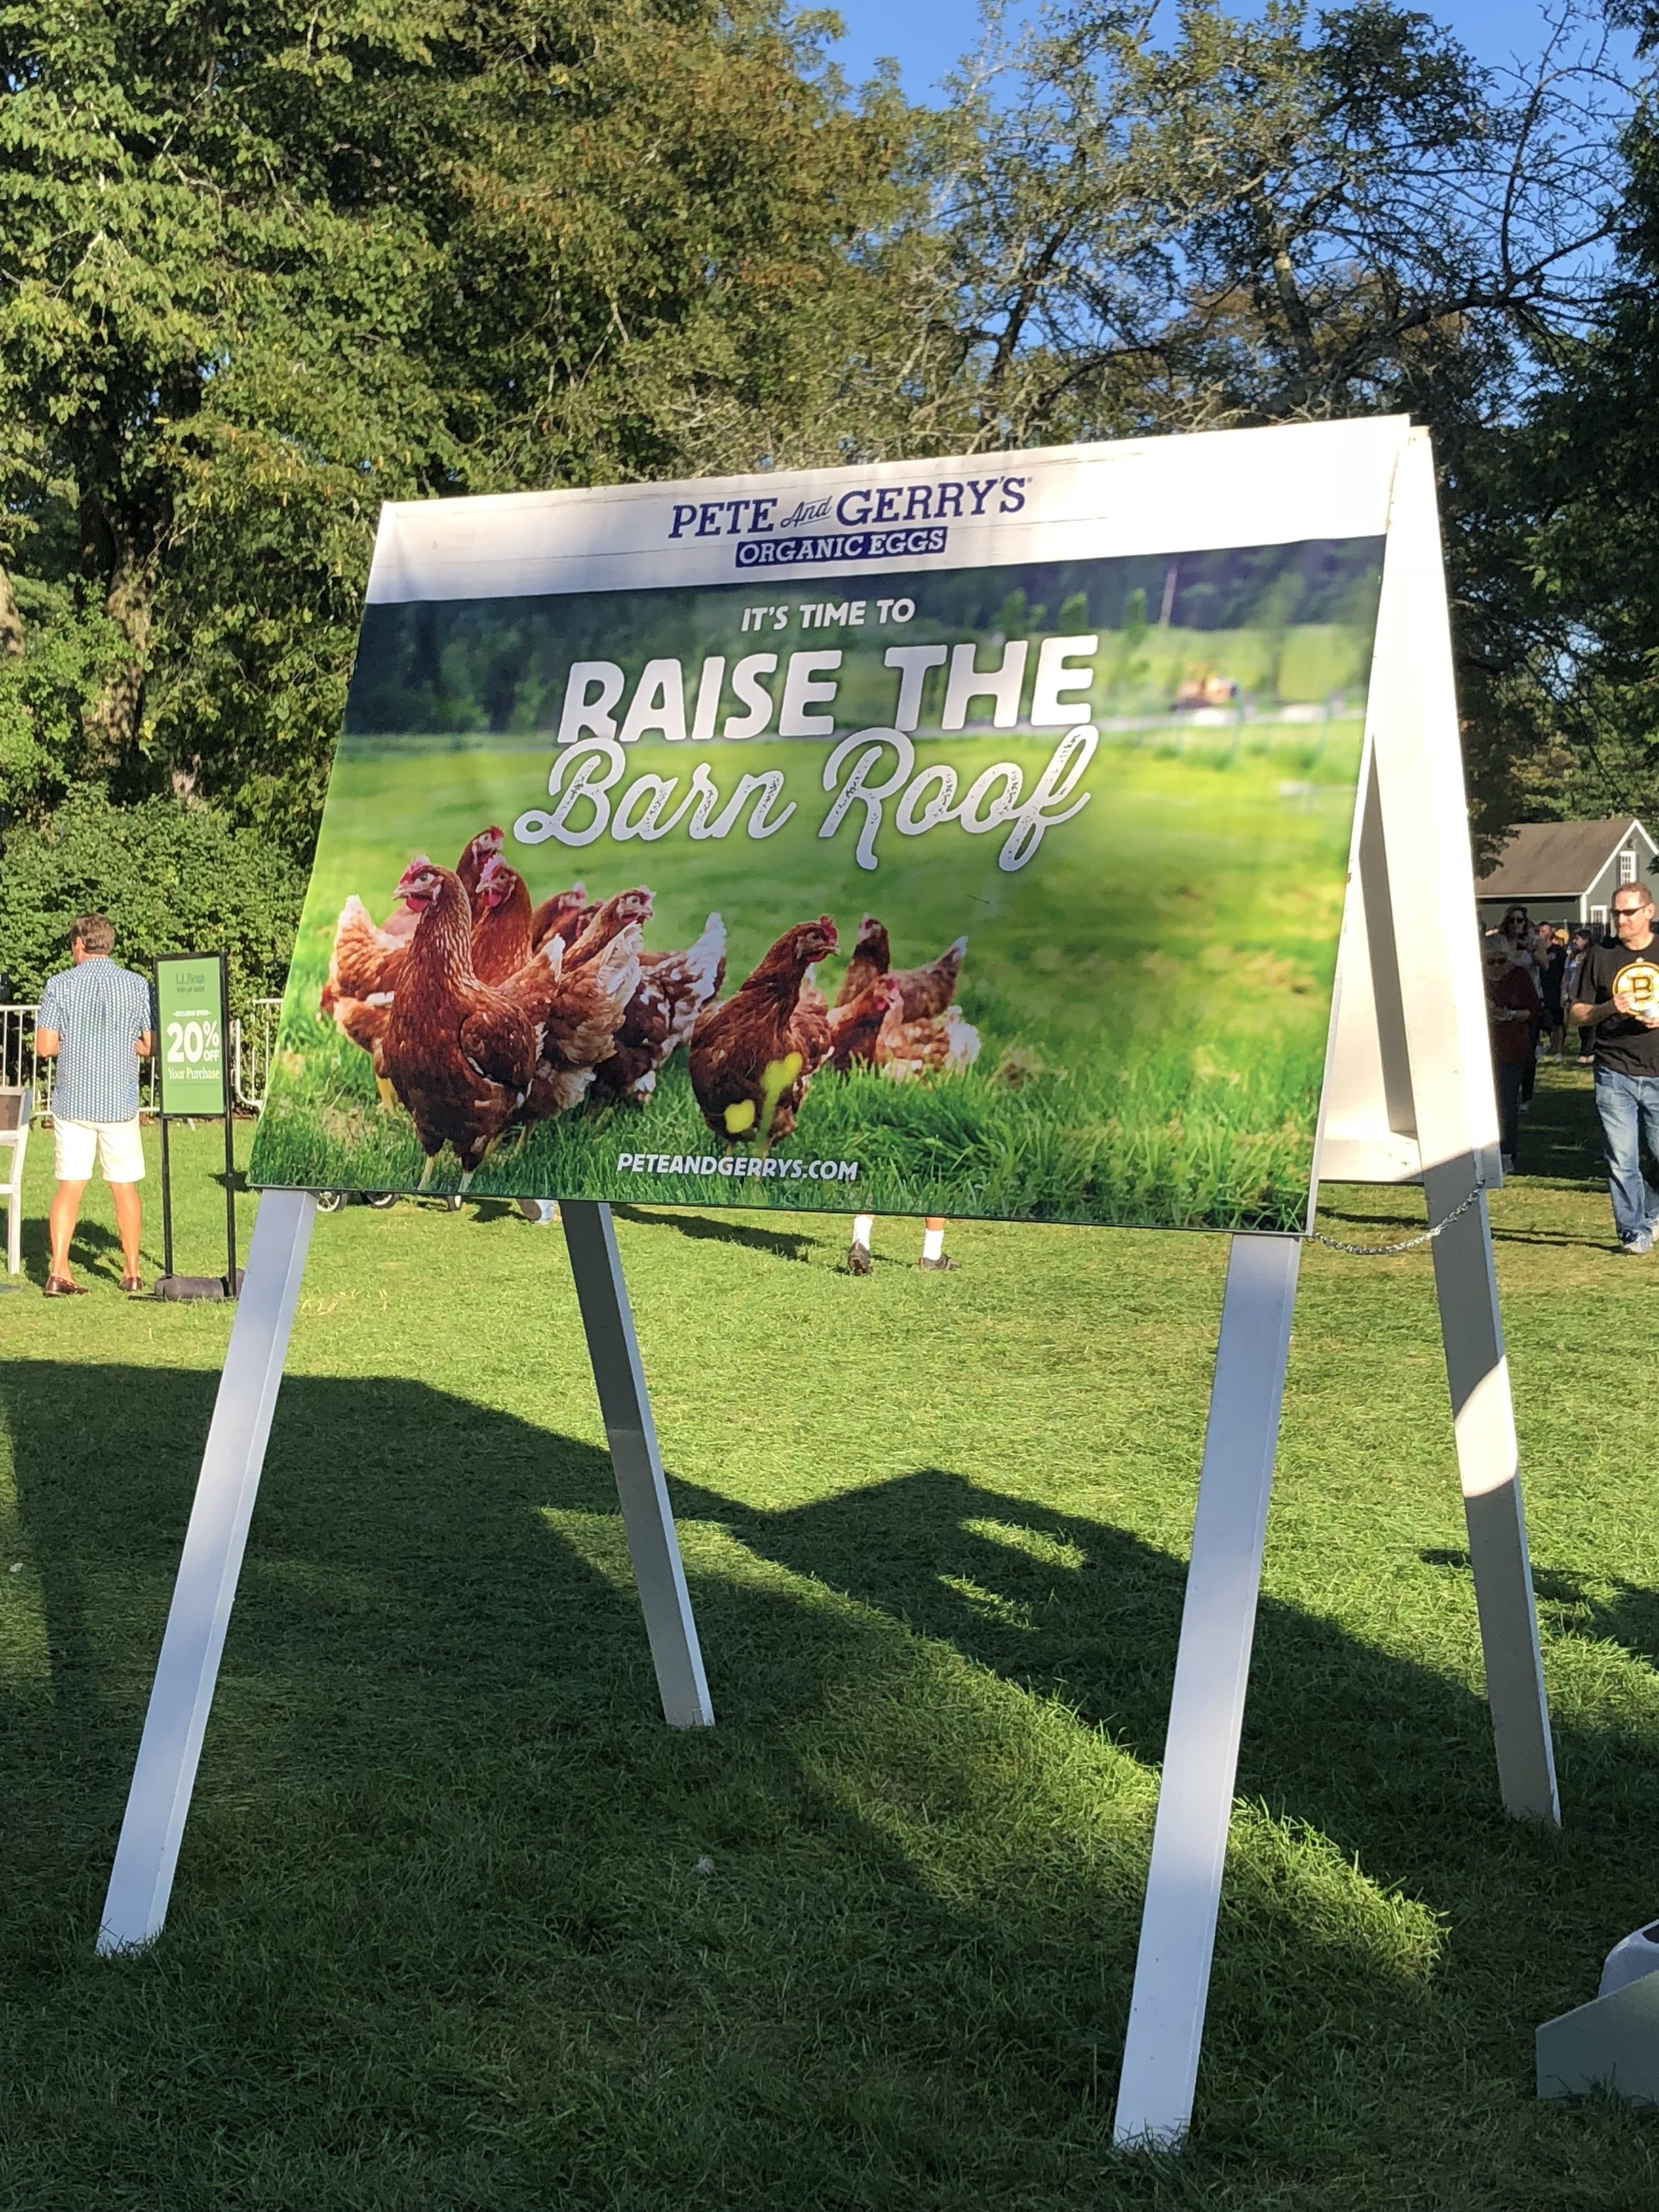 Festival at the Farm Presented by Pete and Gerry's Organic Eggs